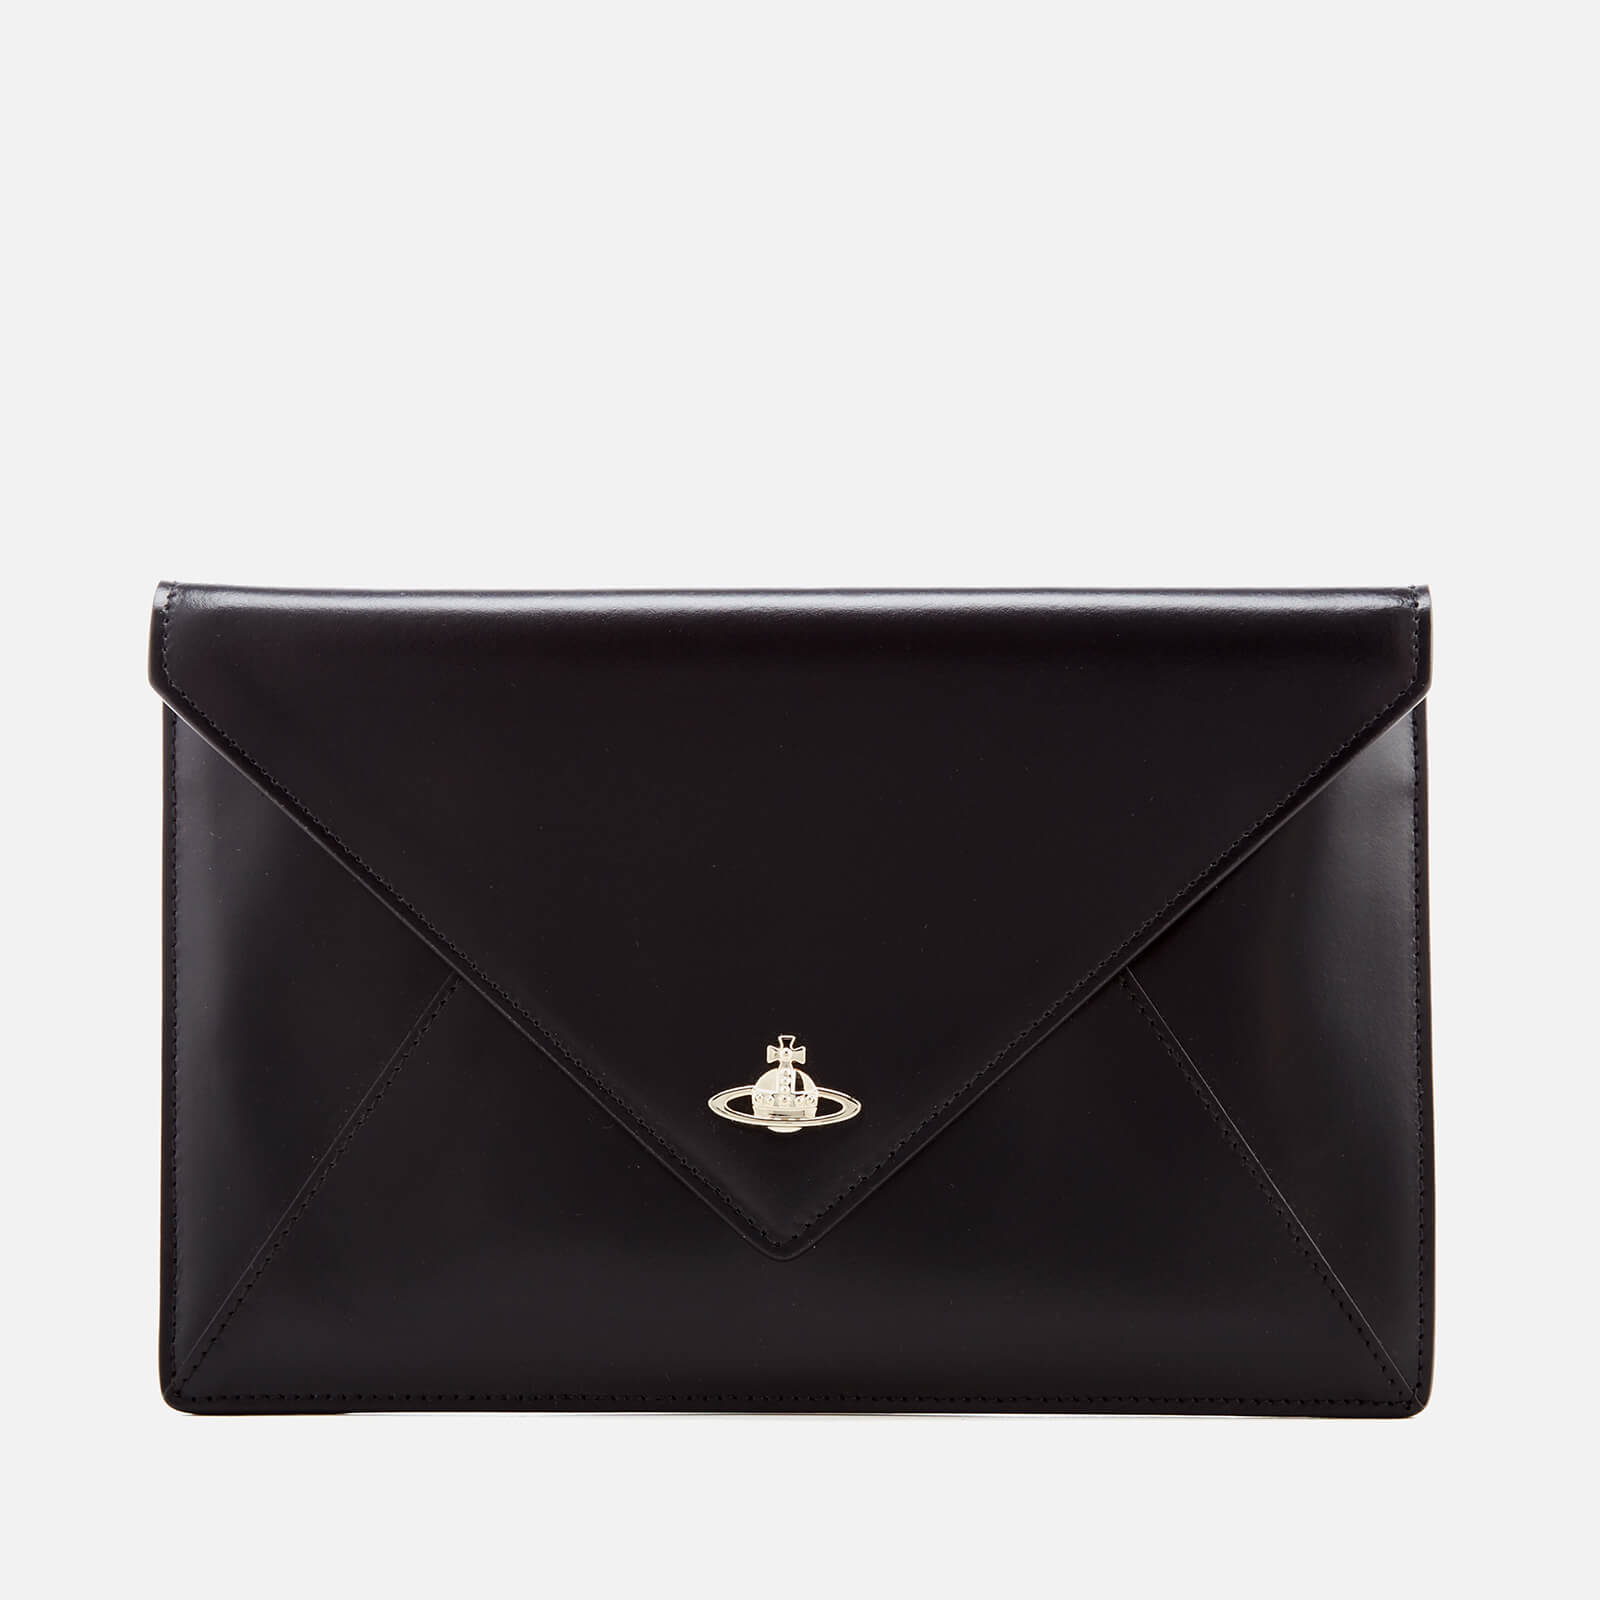 a25556ce84ae Vivienne Westwood Women s Private Envelope Clutch Bag - Black Black - Free  UK Delivery over £50